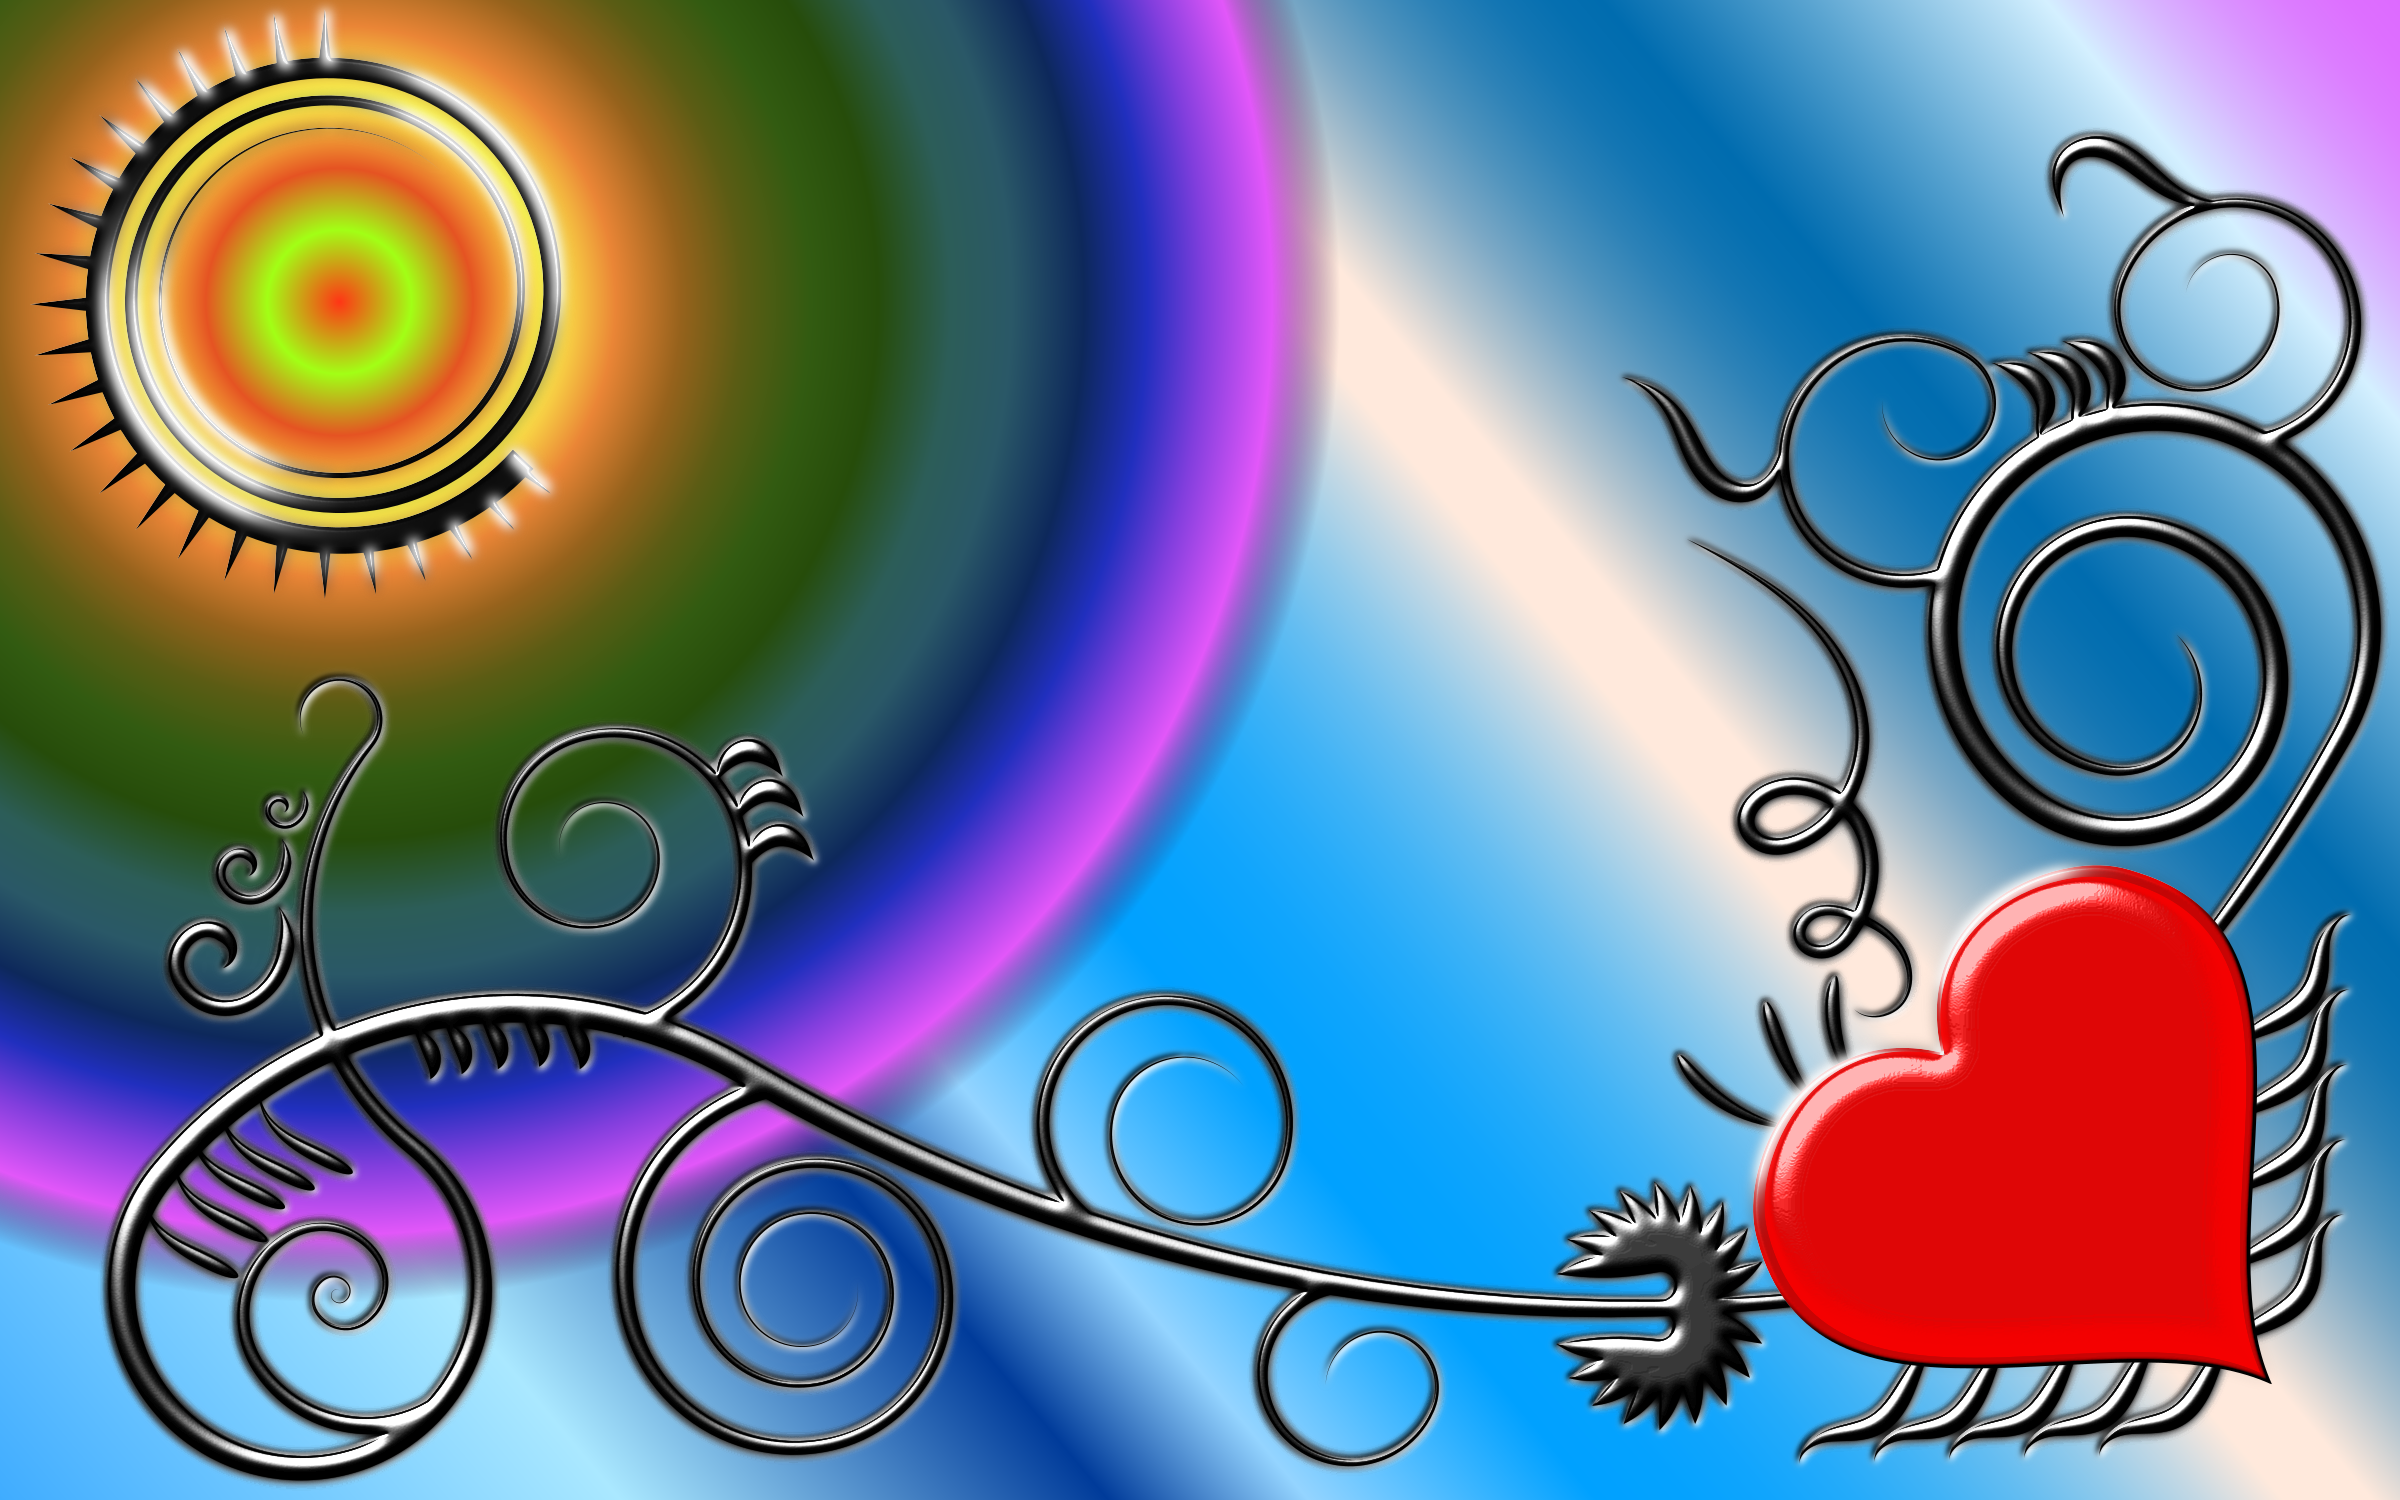 Heart Flourish Background by GDJ